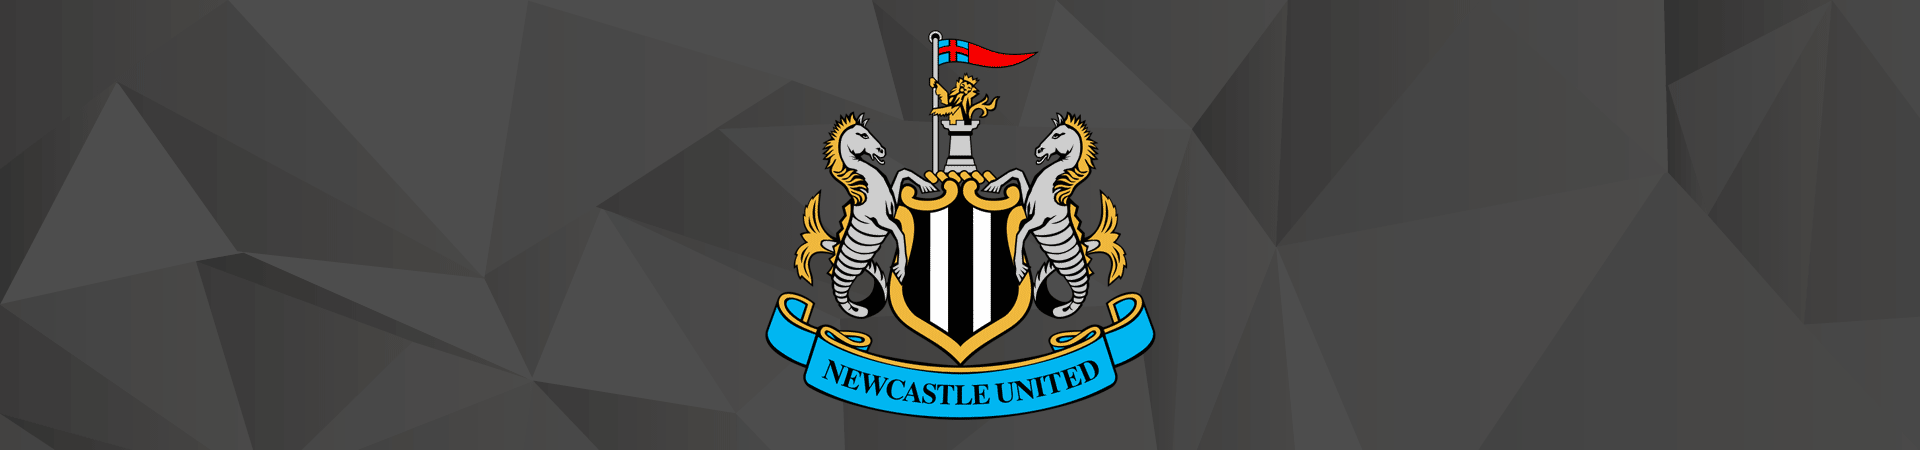 Supporters Newcastle Utd